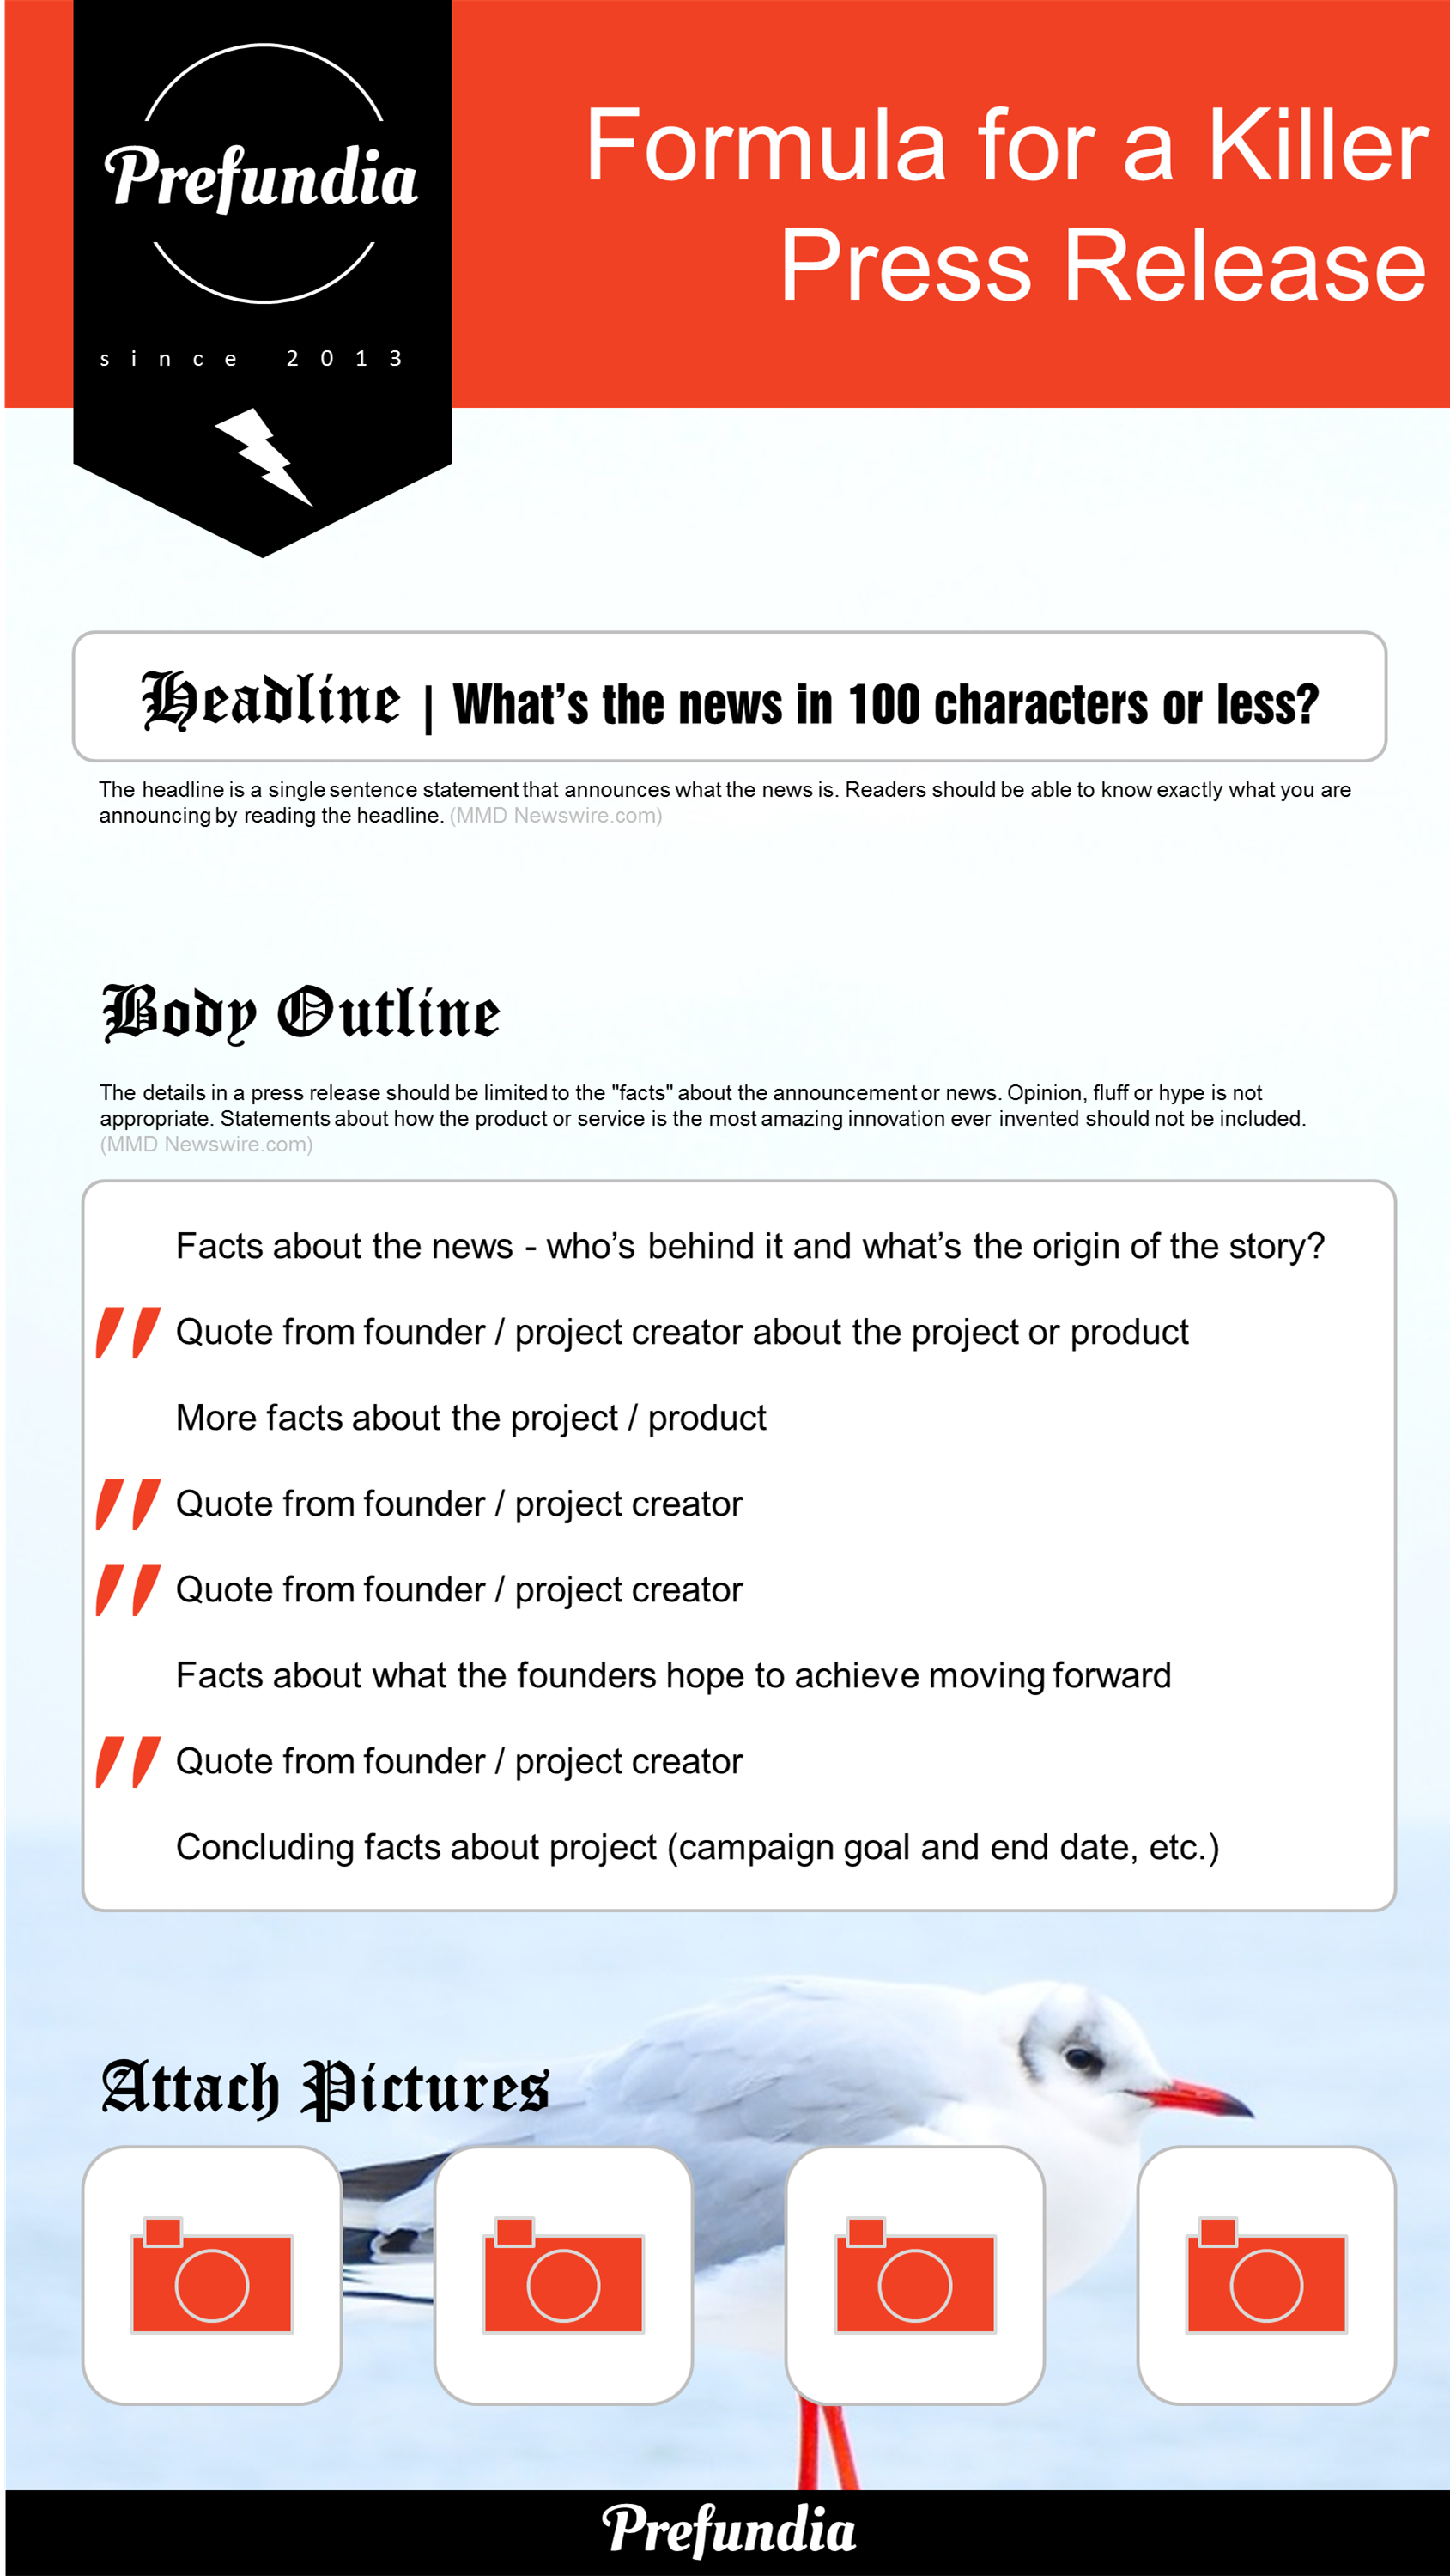 104 Ideas for Press Releases Infographic. #pressrelease #strategy ...